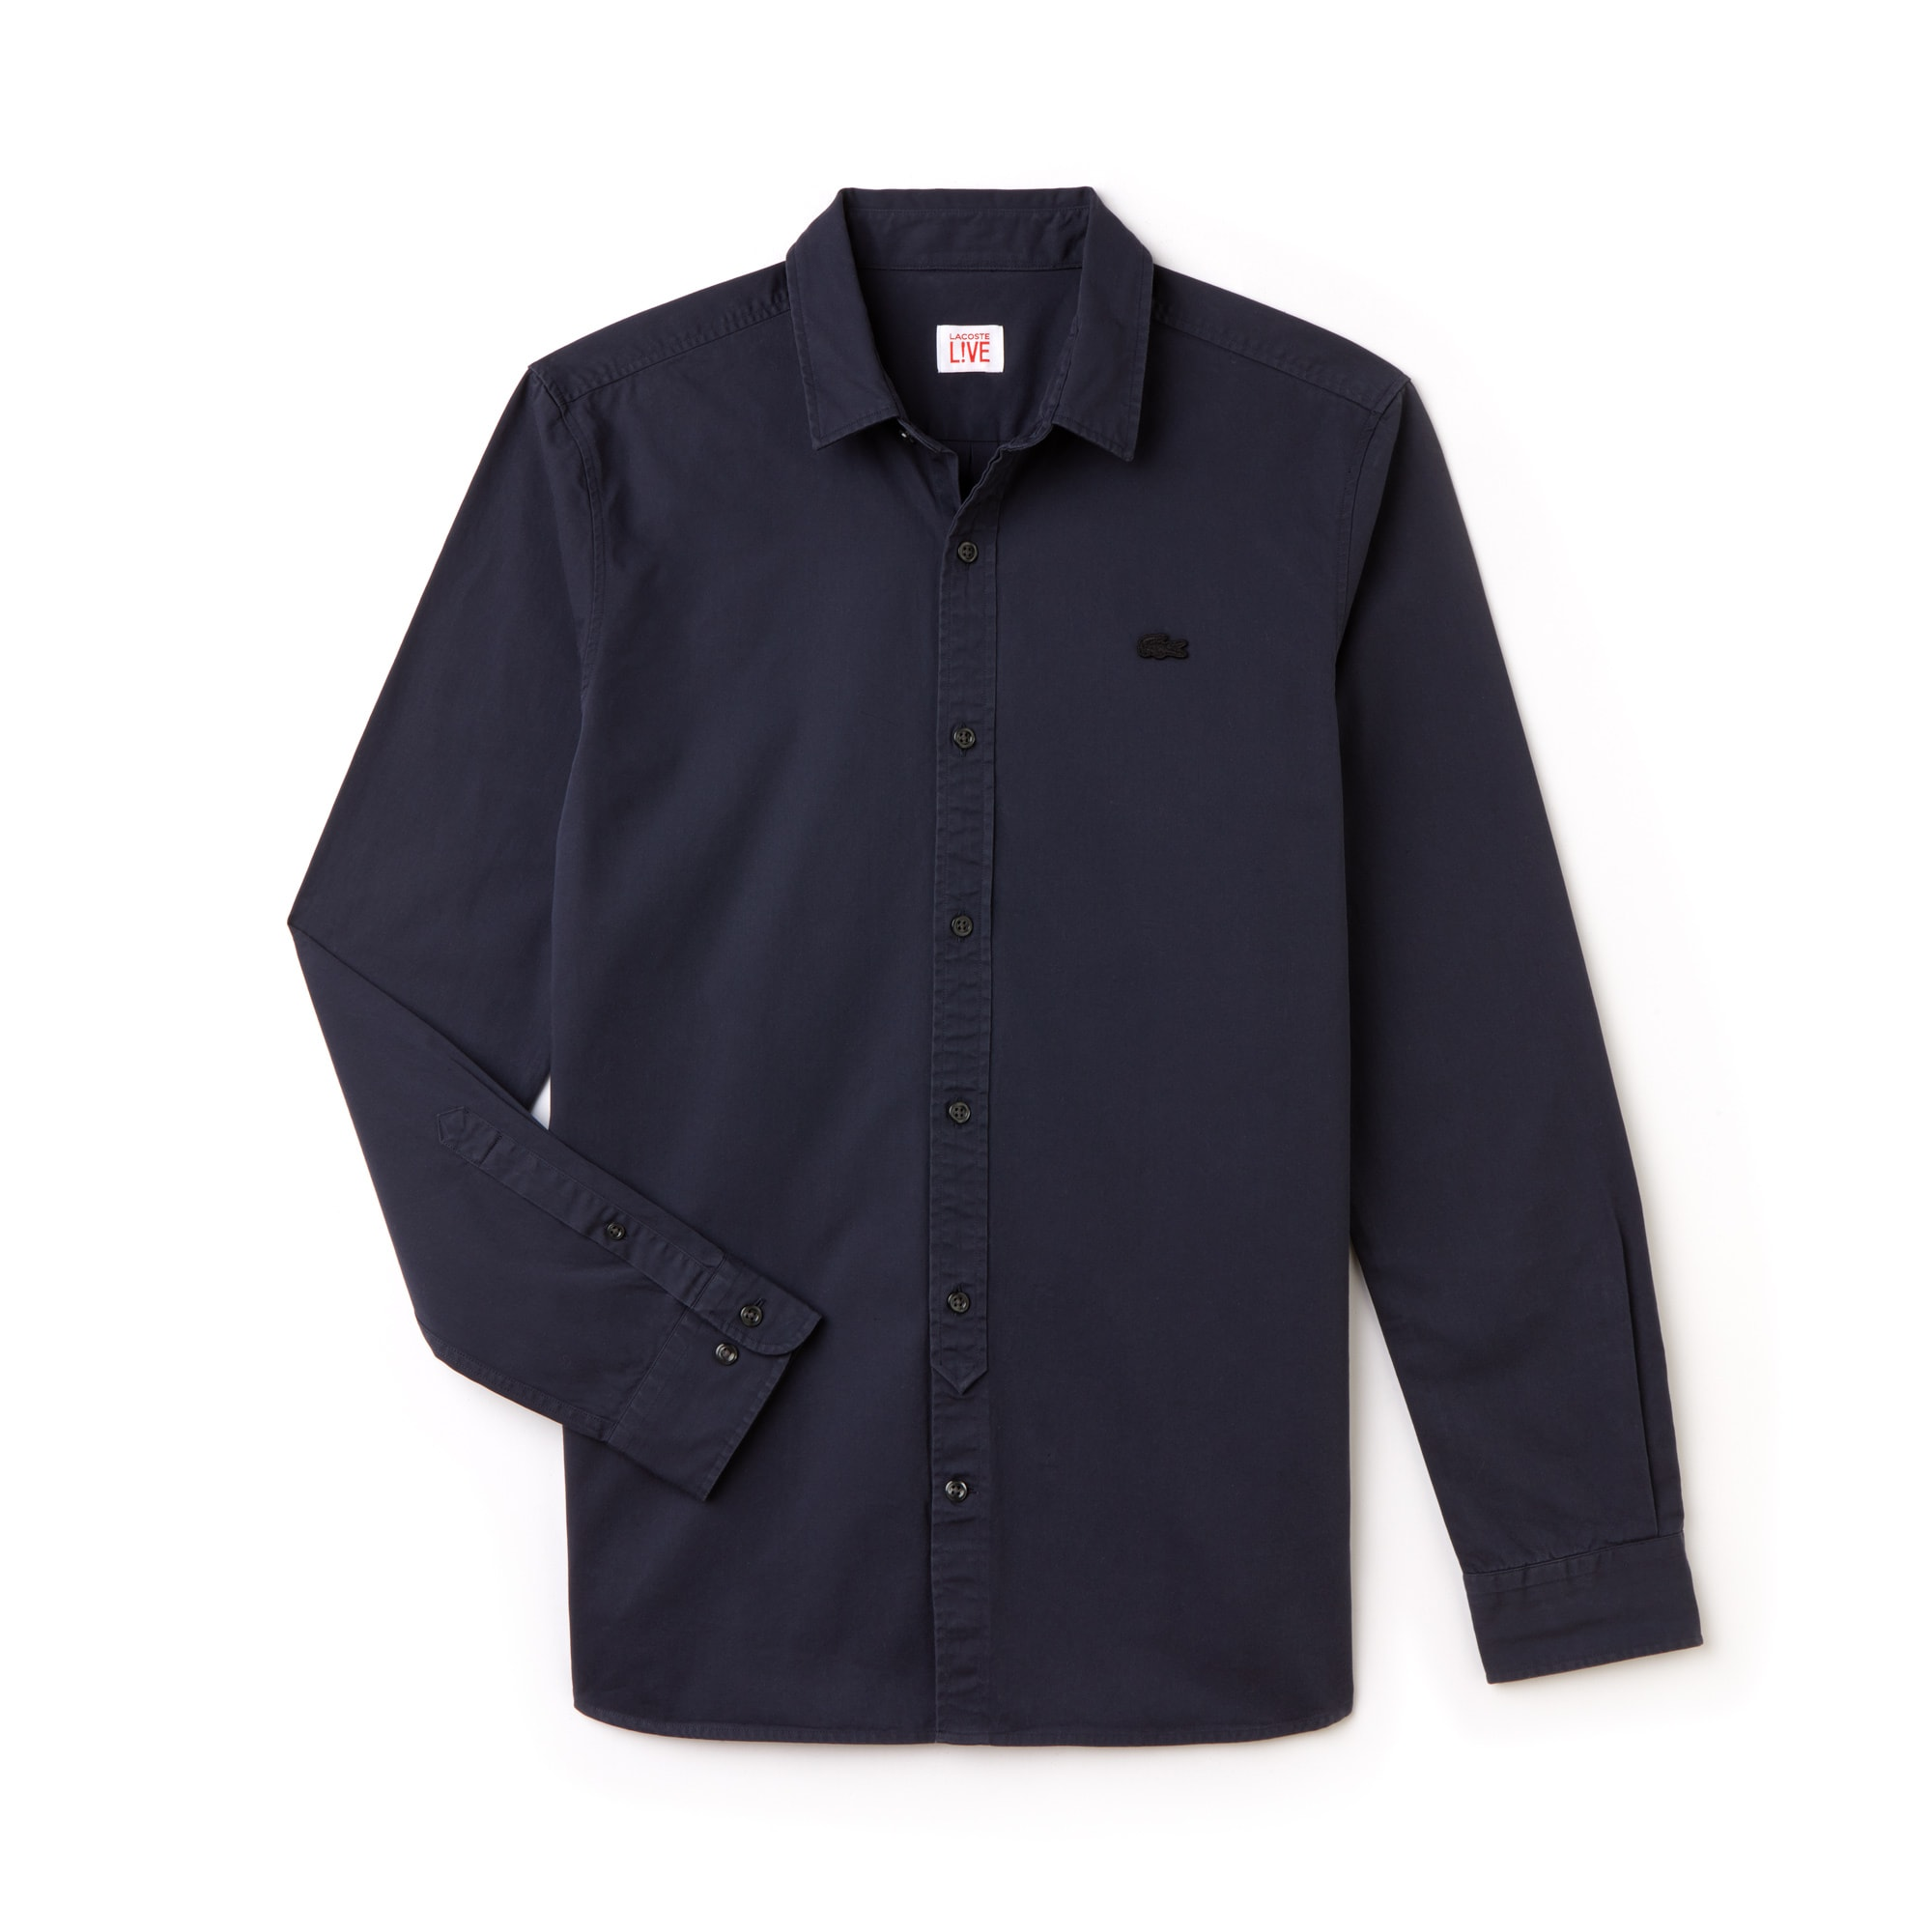 Men's Lacoste LIVE Skinny Fit Cotton Poplin Shirt